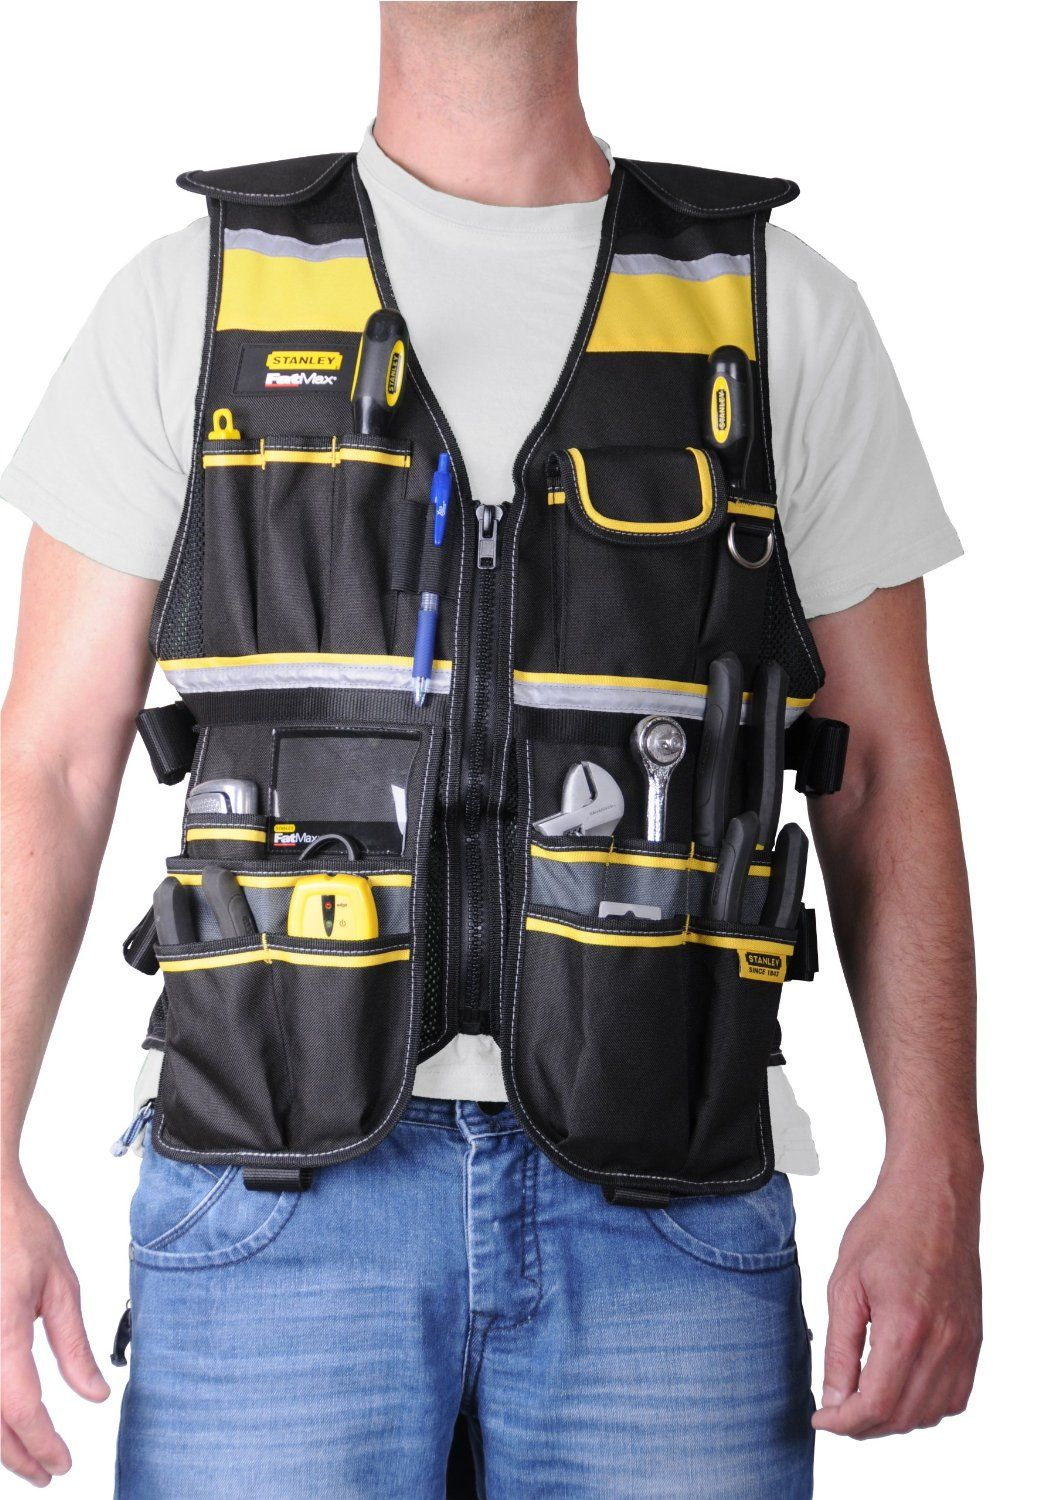 garage workshop ideas photos - Stanley FMST Fatmax Tool Vest Amazon